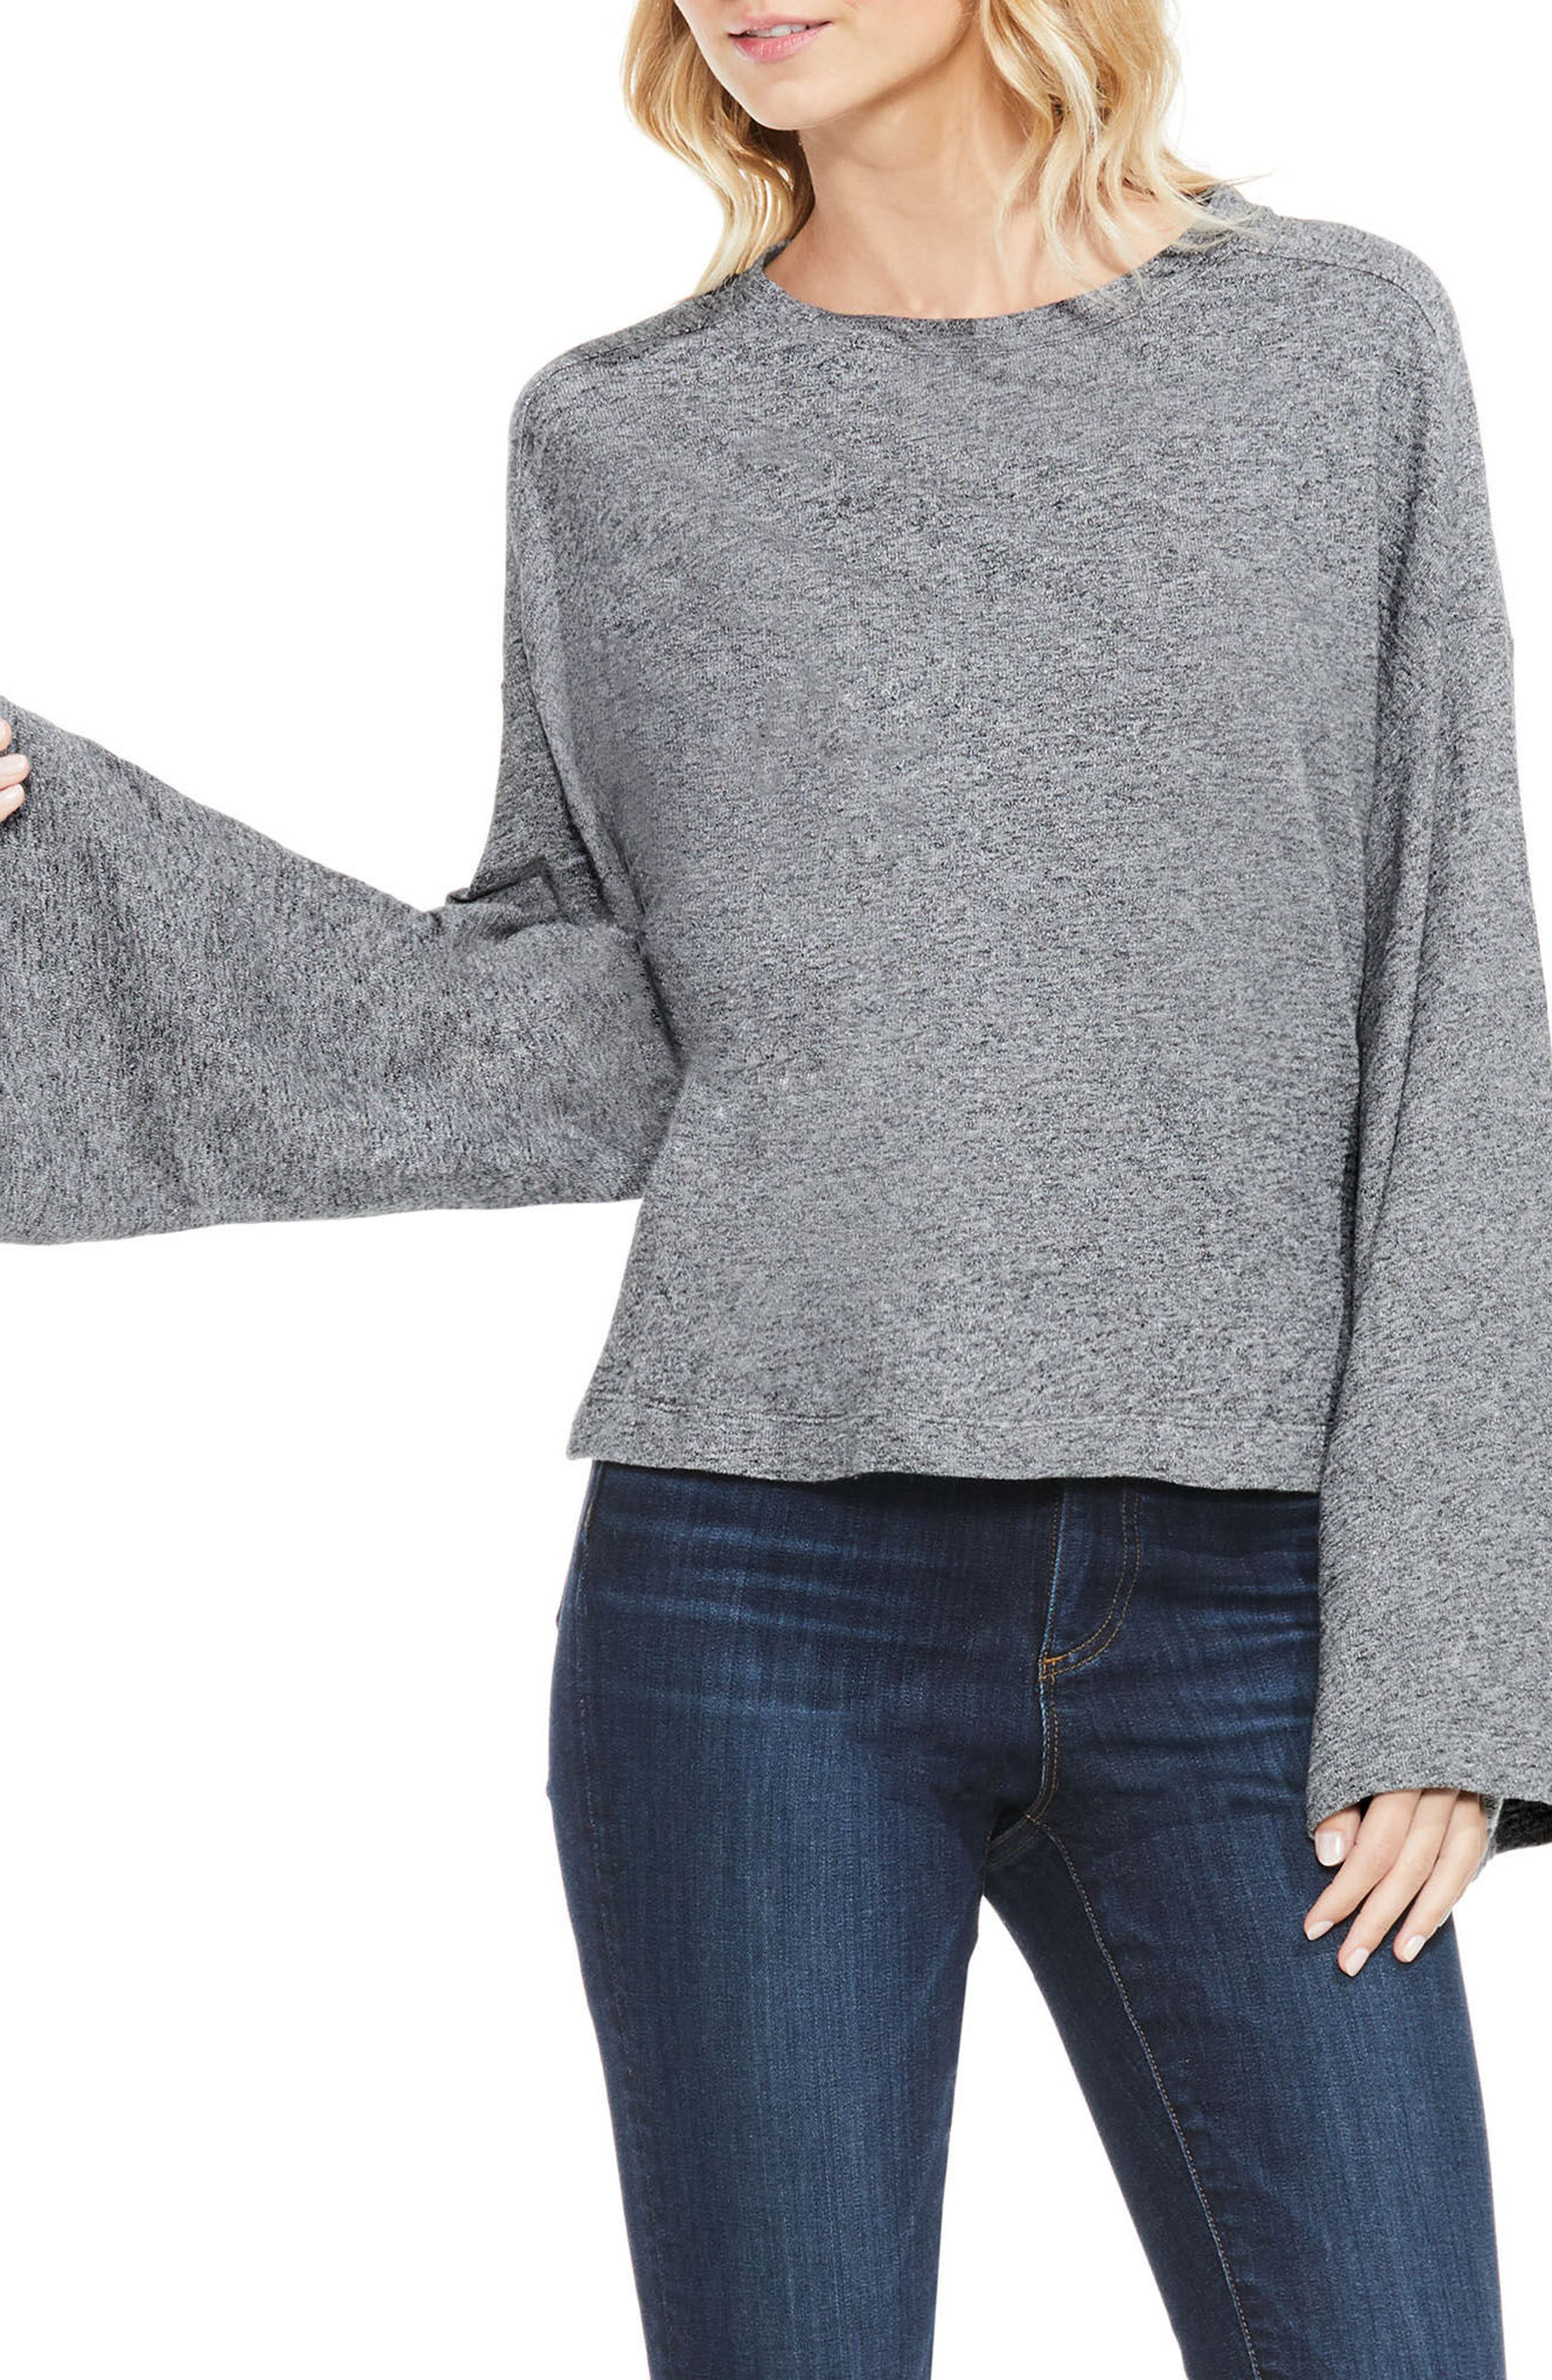 Alternate Image 1 Selected - Two by Vince Camuto Marled Bell Sleeve Top